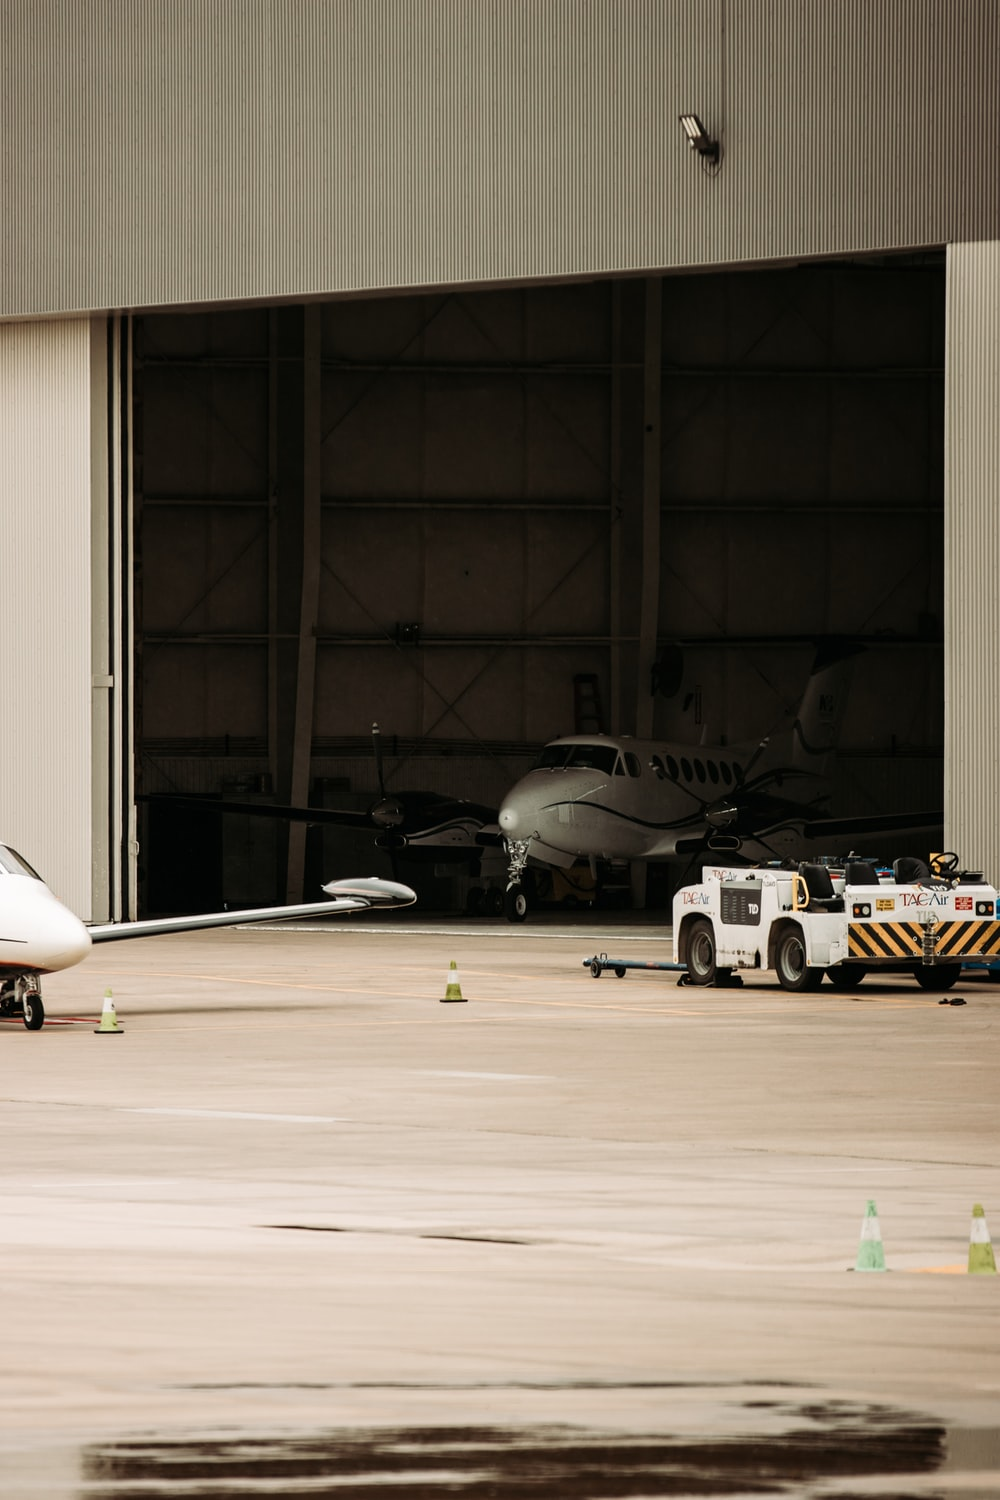 white airplane on a airport